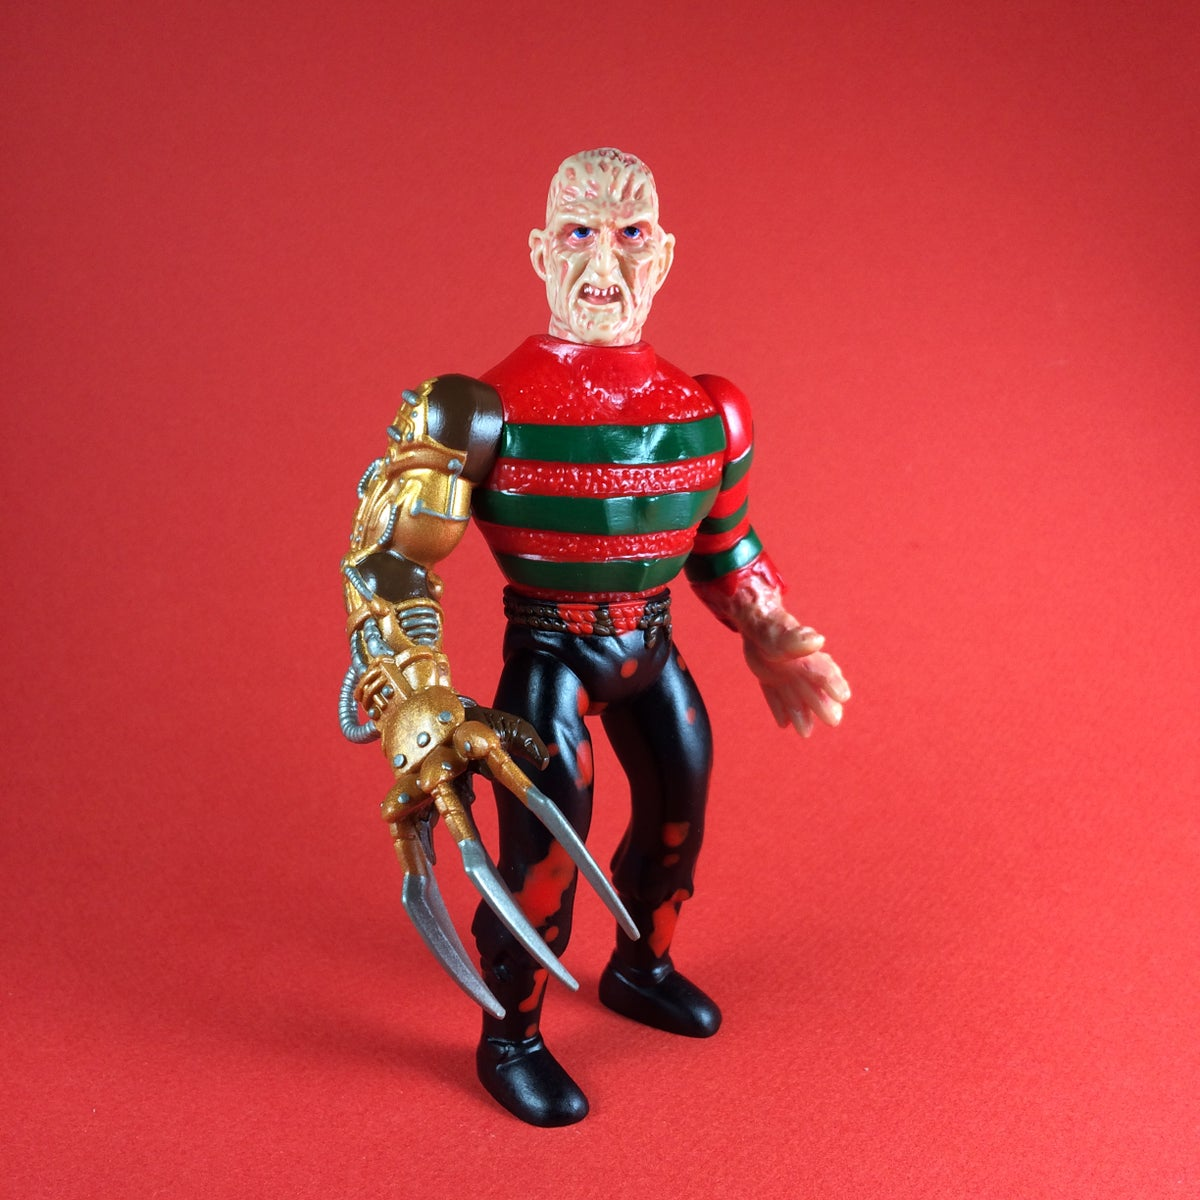 Image of Freddy 3000 (Preorder closed)